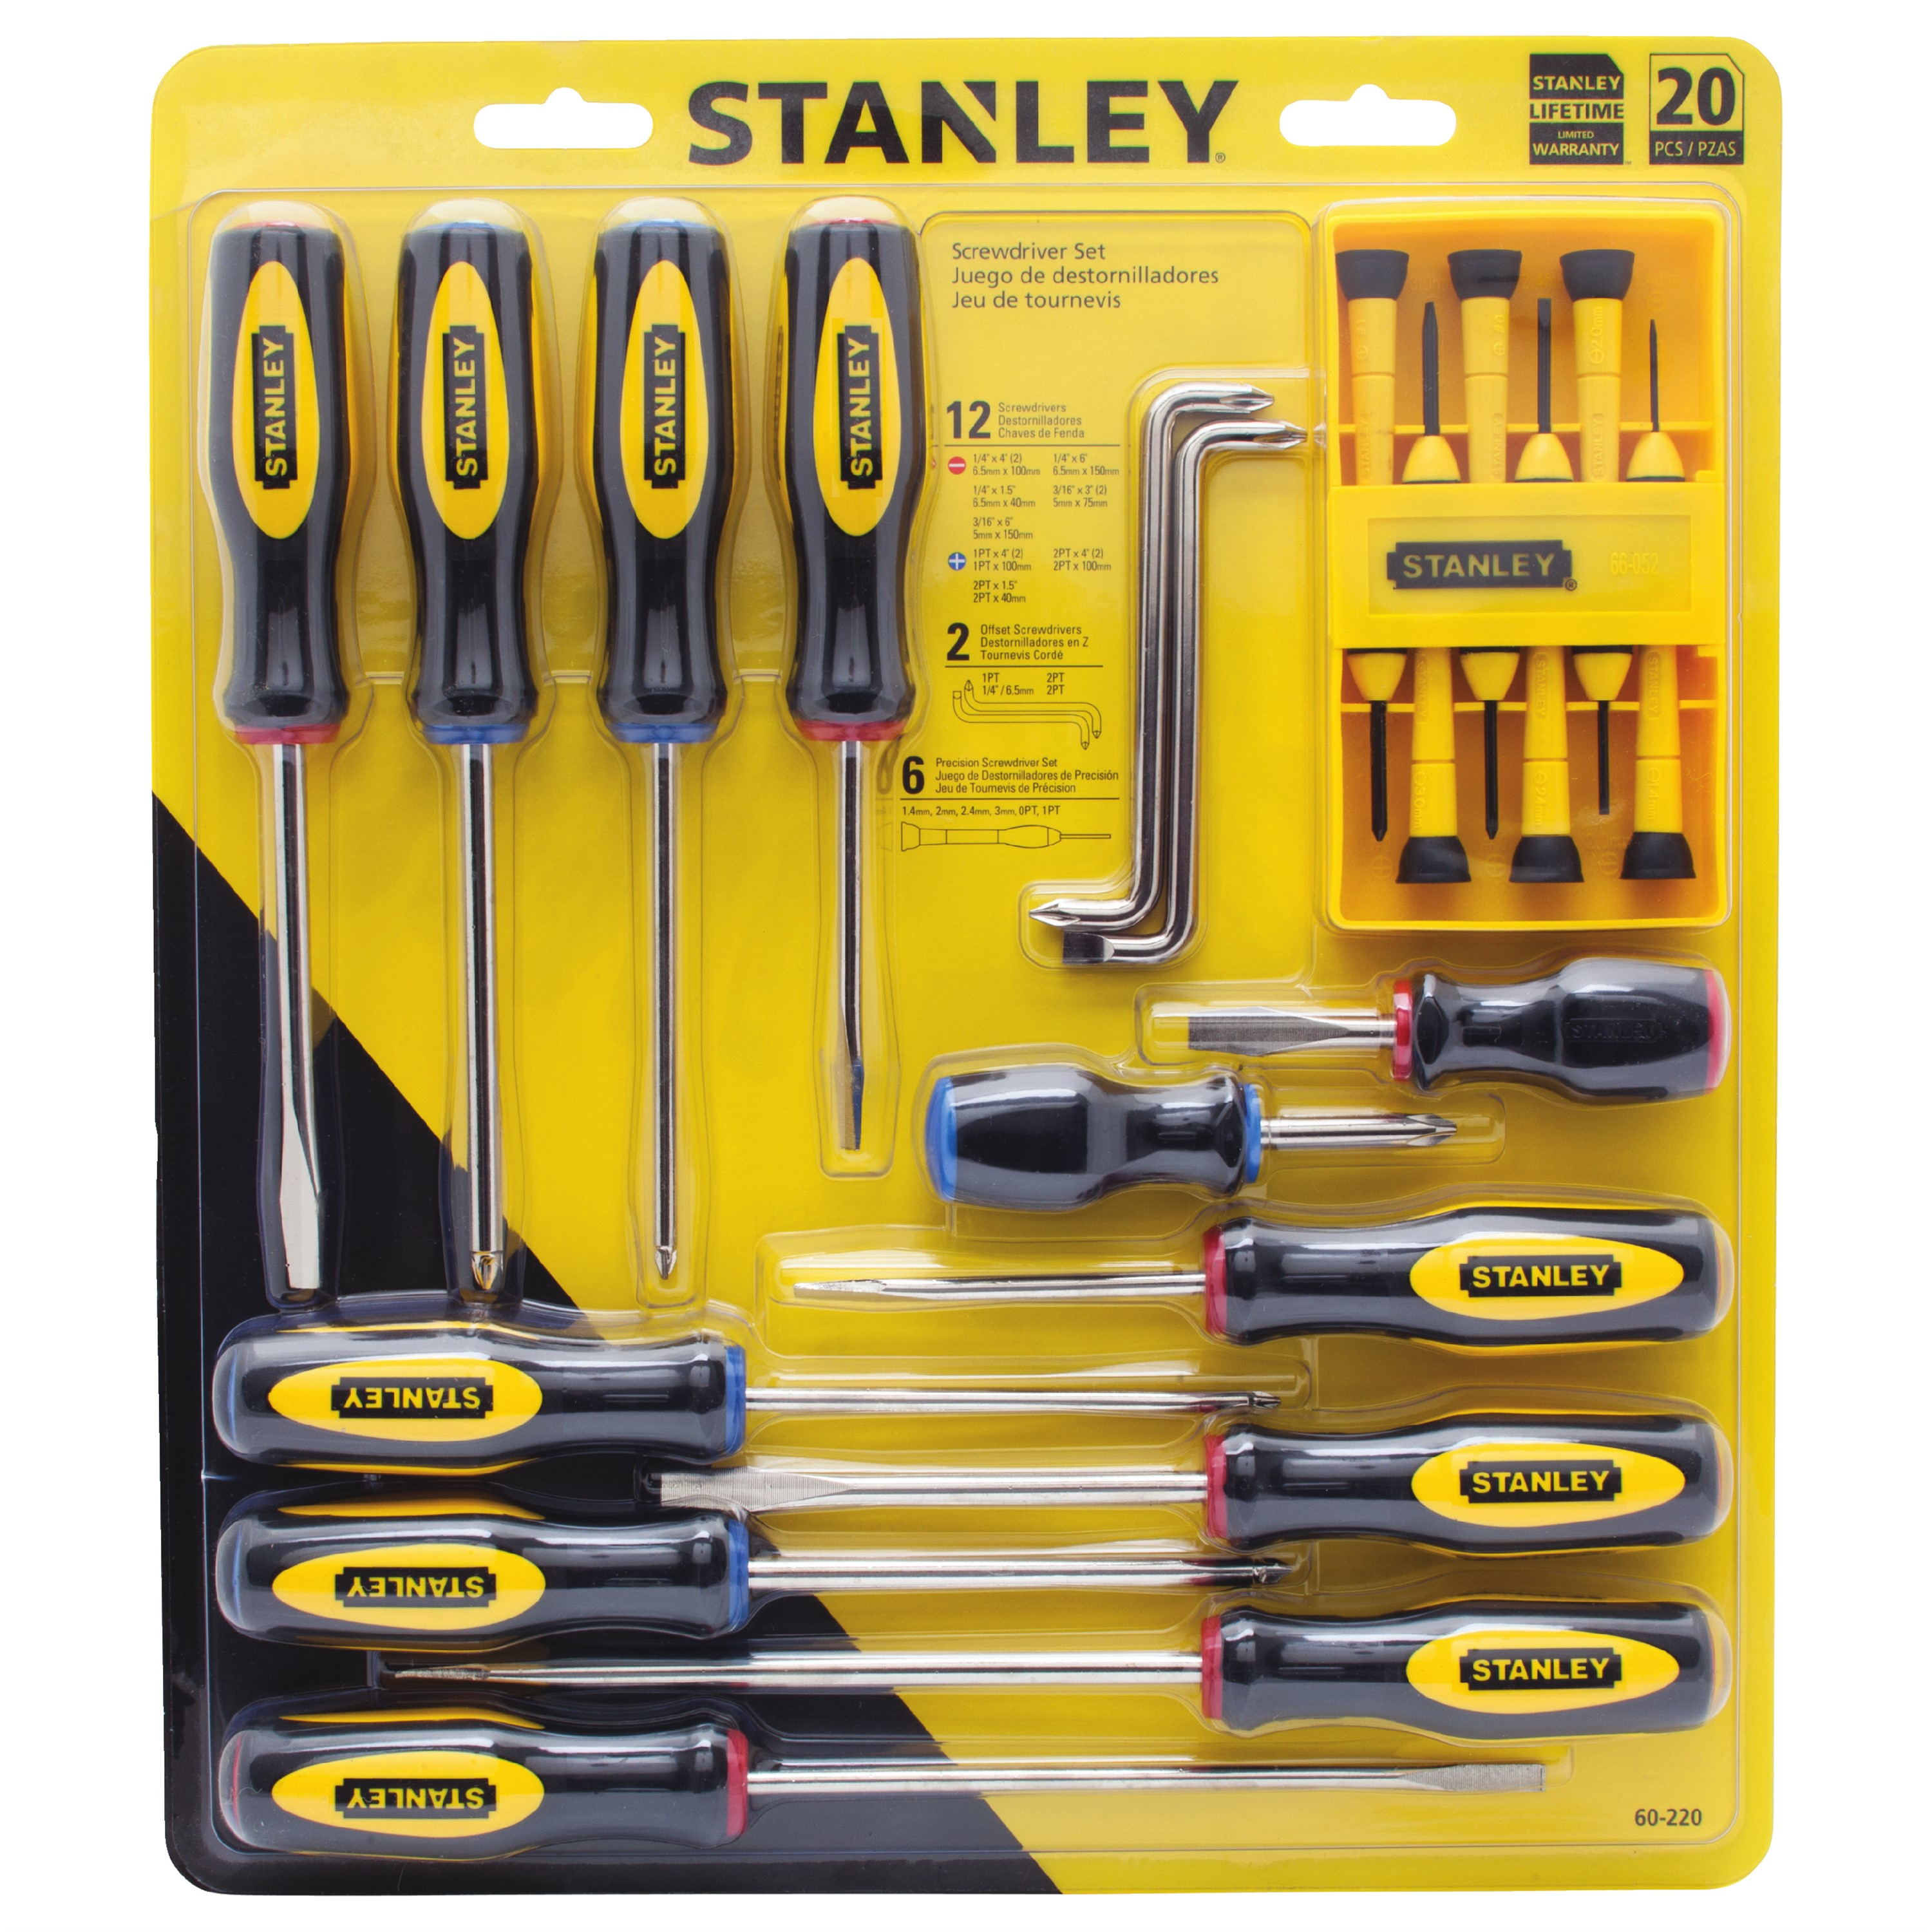 STANLEY�� 60-220 20-Piece Screwdriver Set